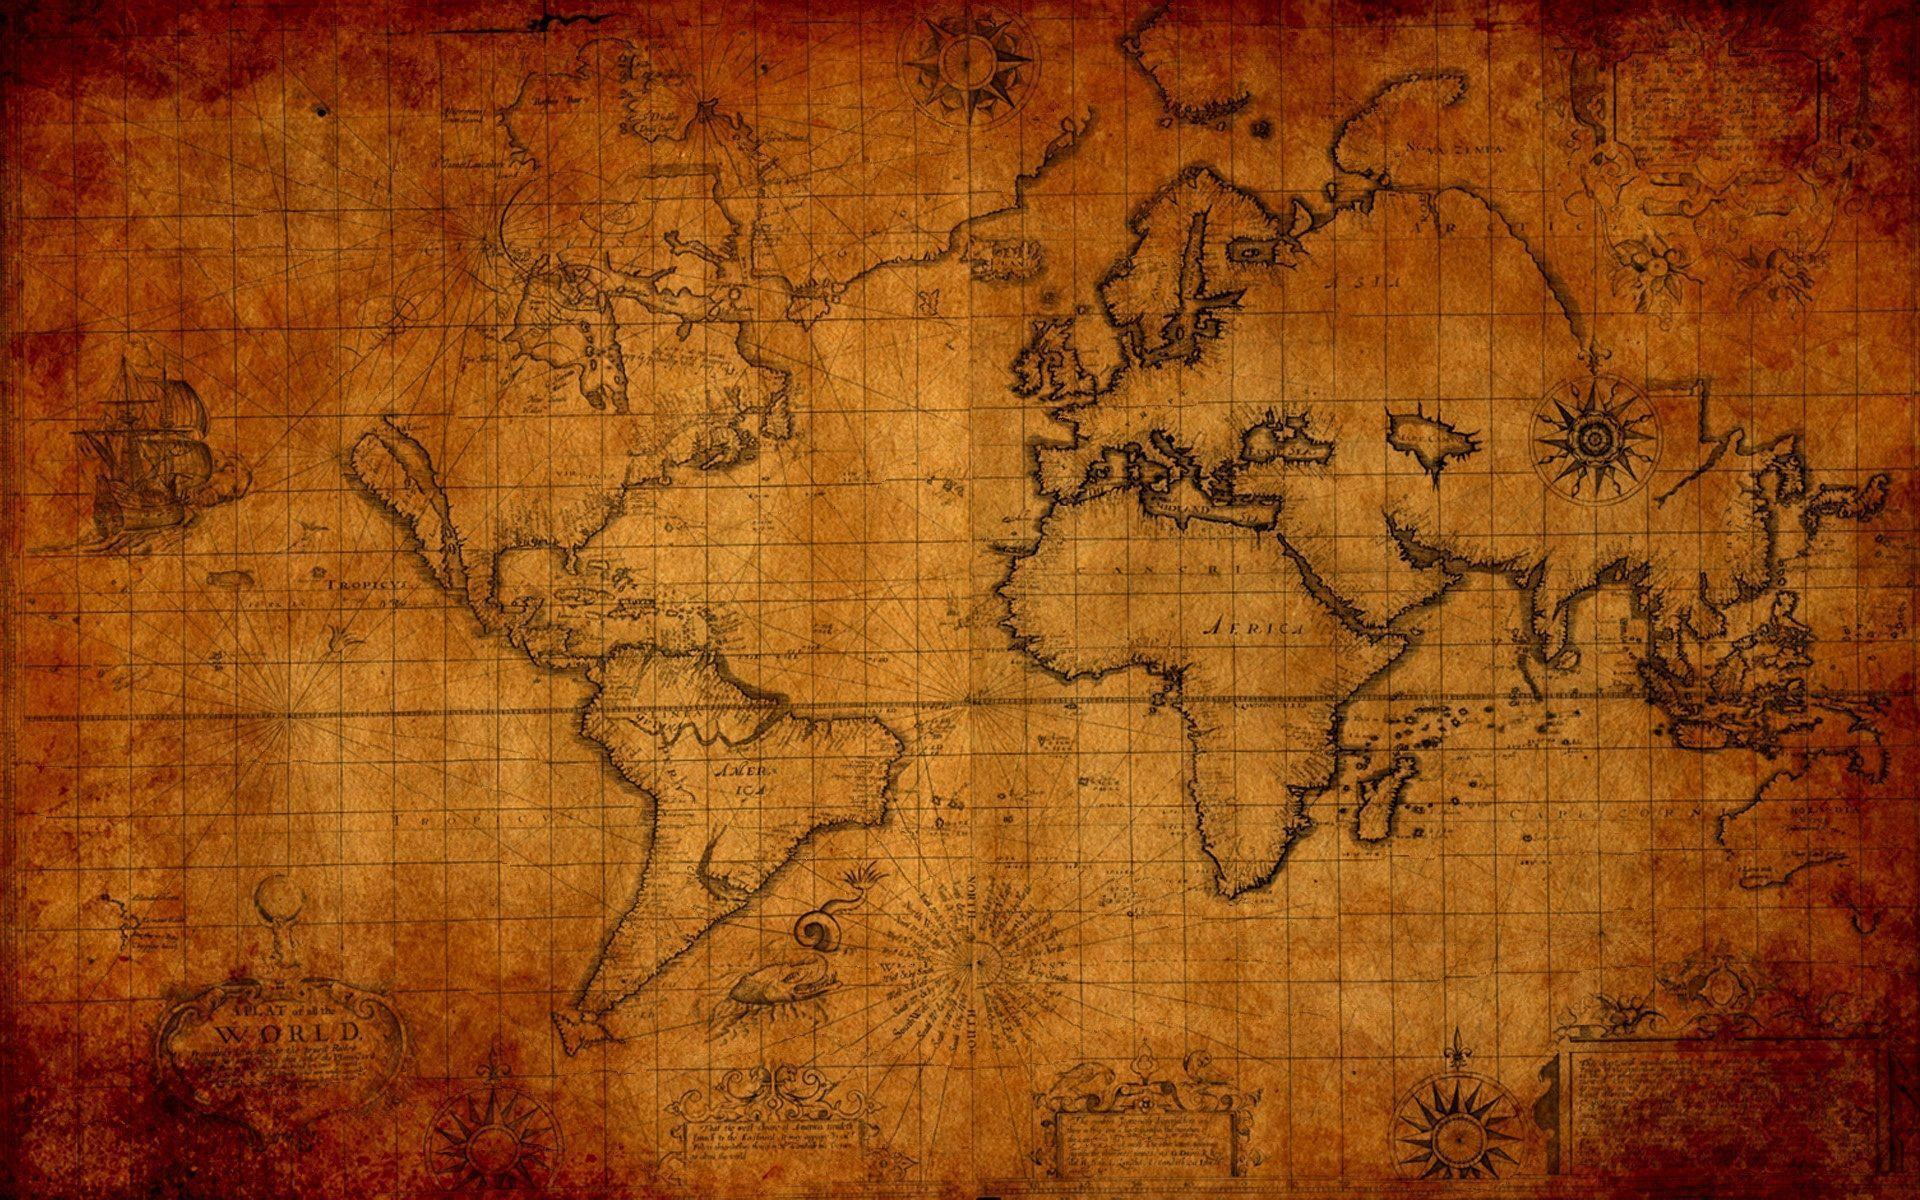 World map wallpapers high resolution wallpaper cave world map wallpapers full hd wallpaper search gumiabroncs